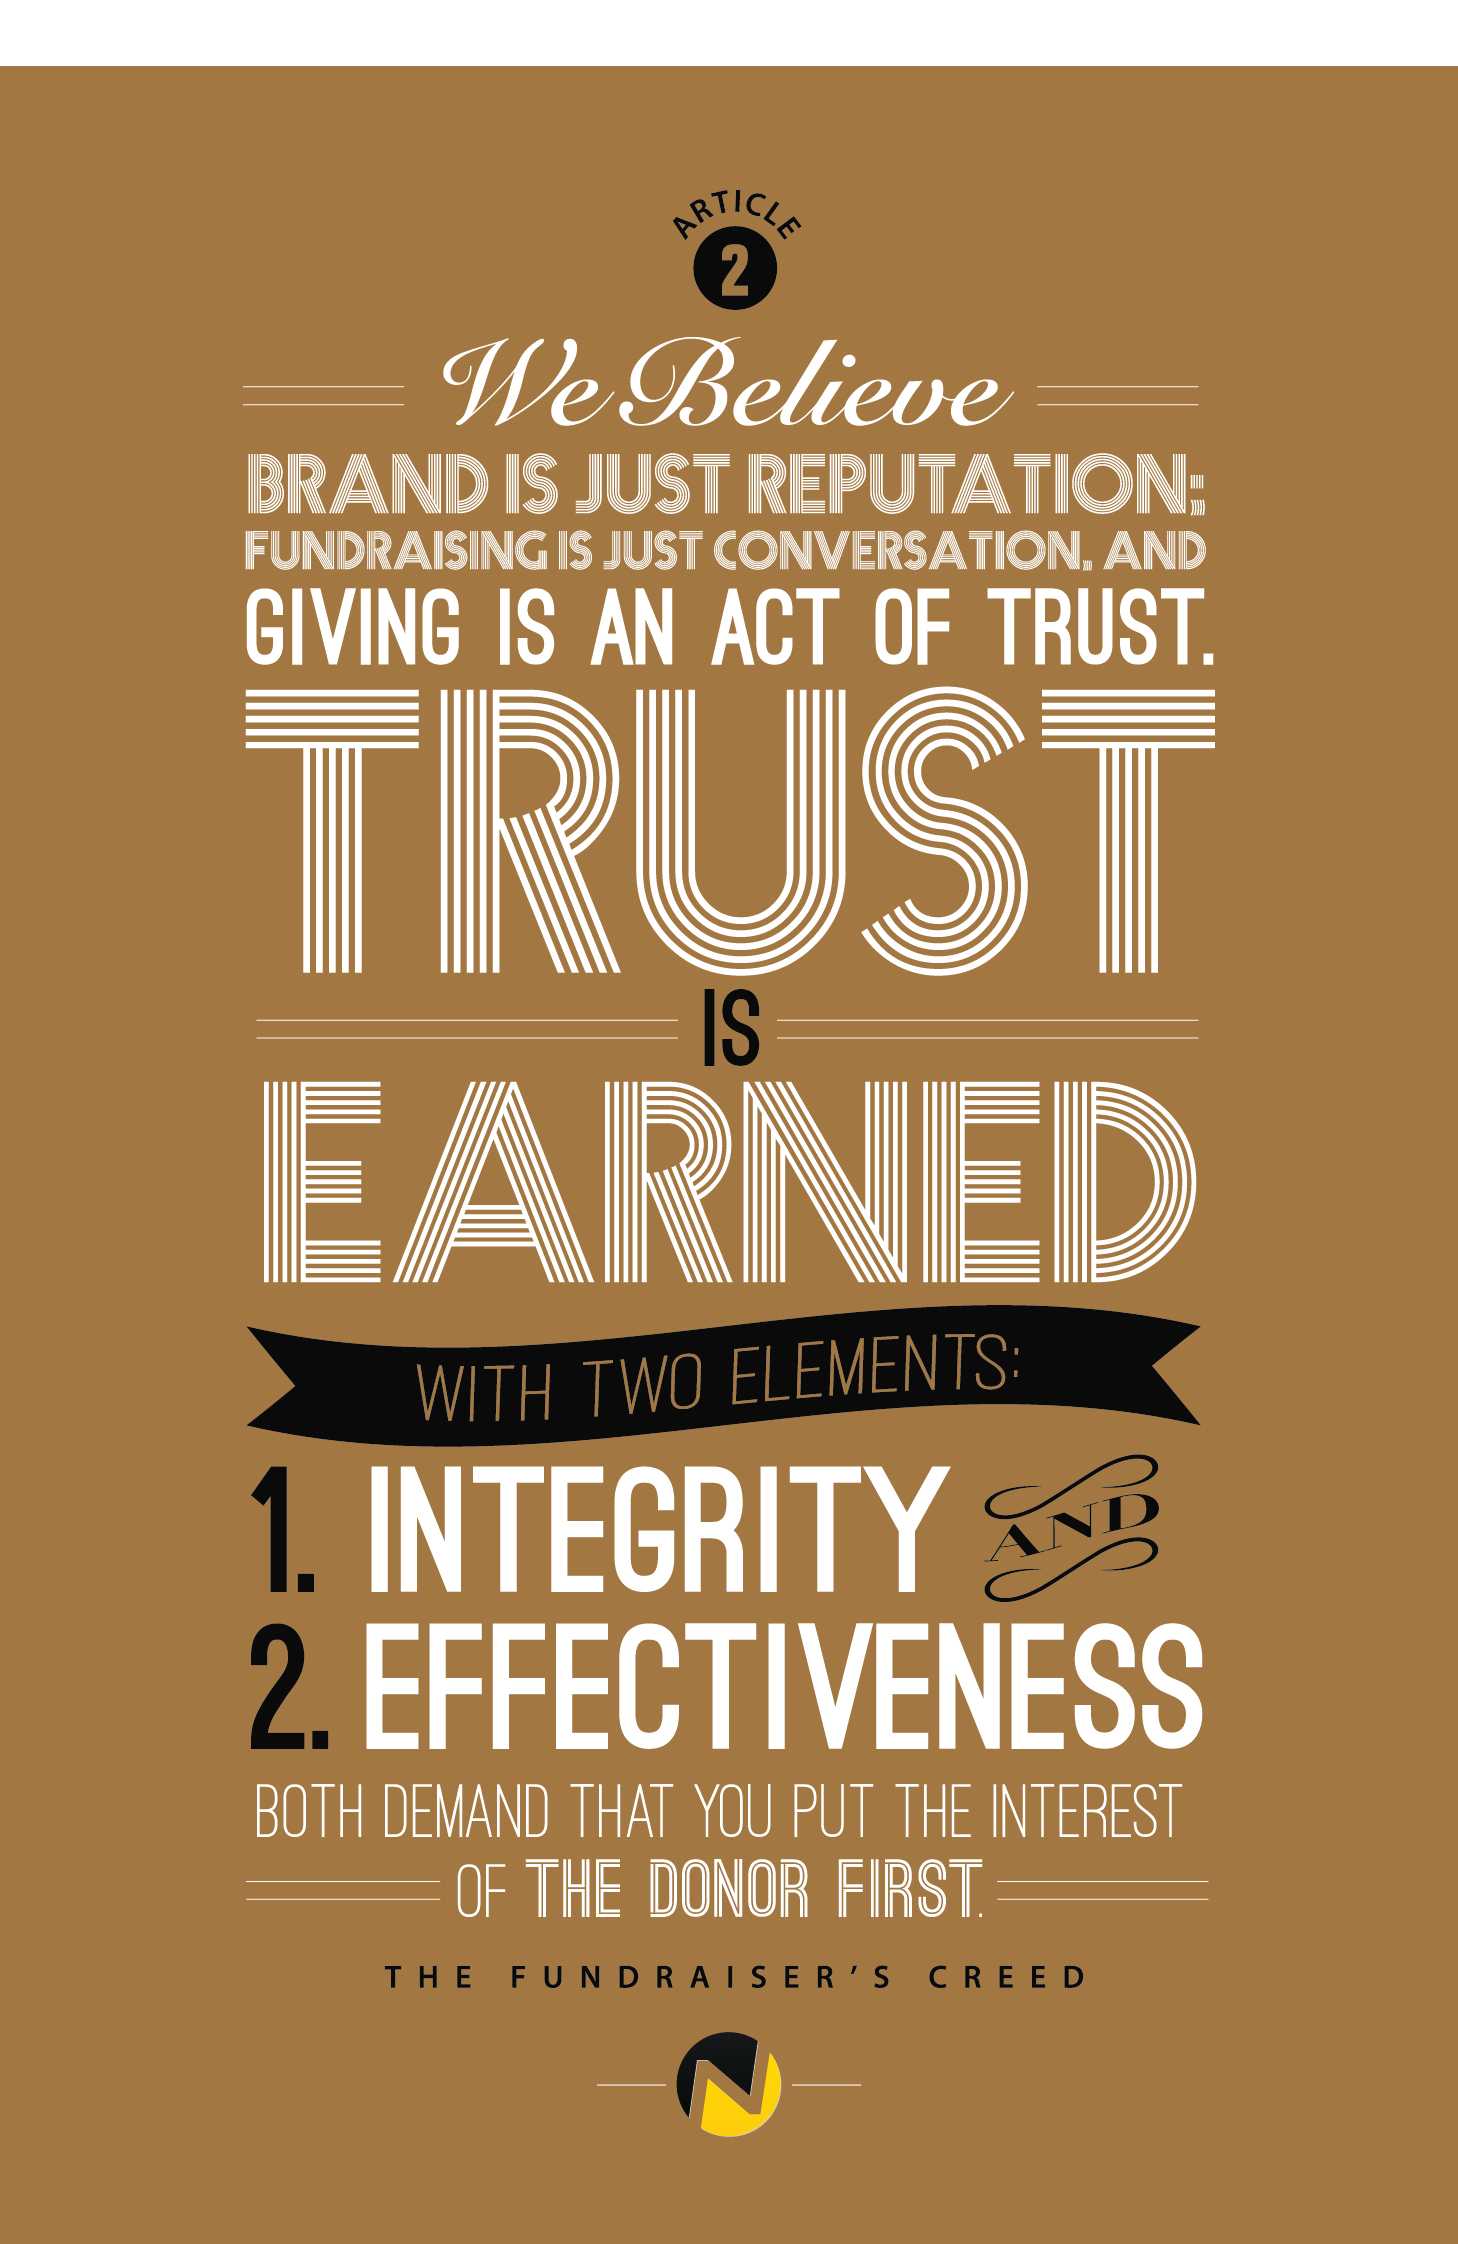 Fundraiser's Creed - Article 2 - Giving Is An Act of Trust